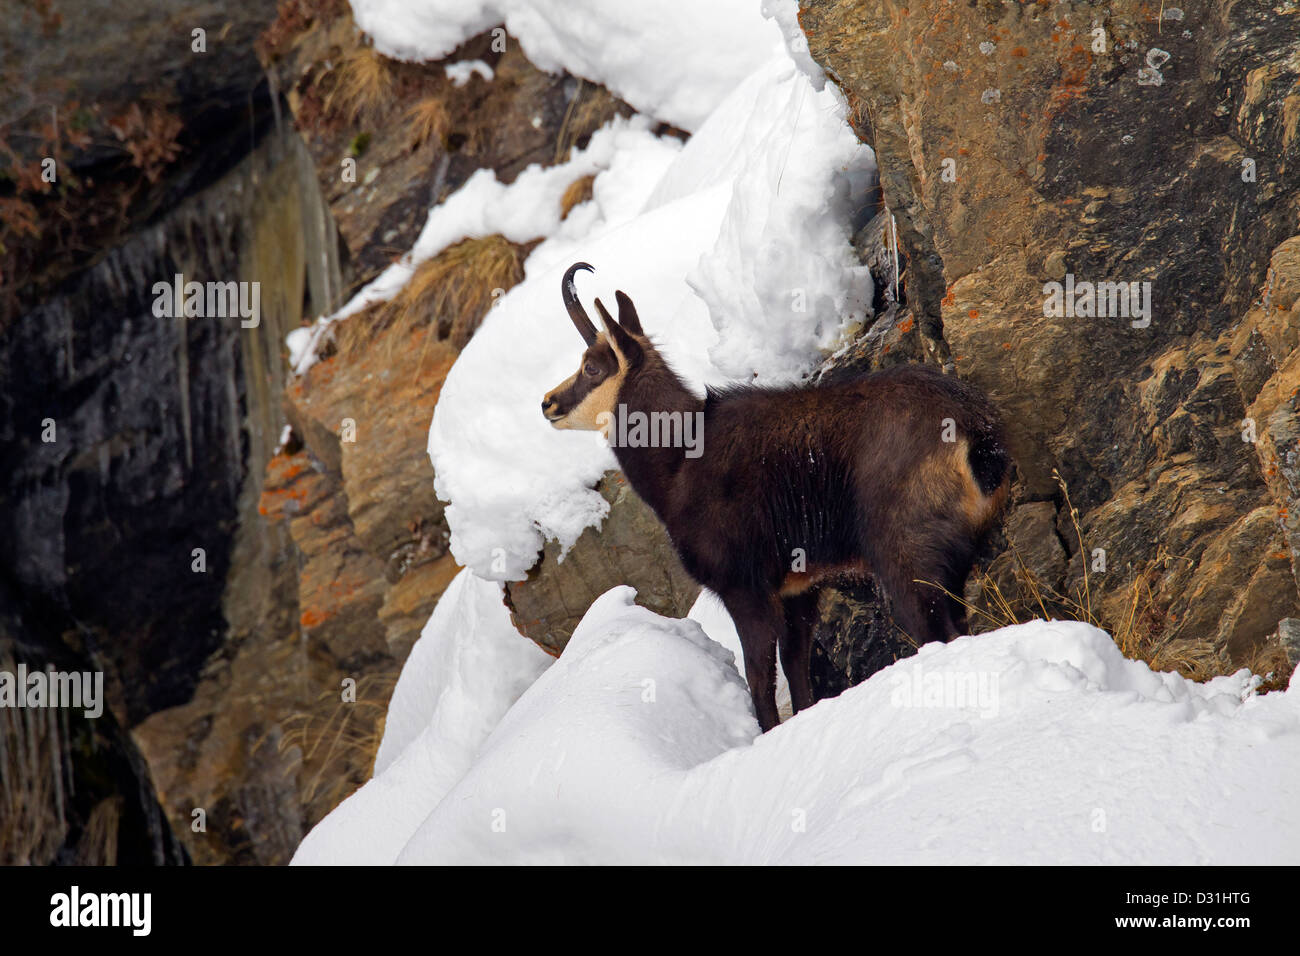 Chamois (Rupicapra rupicapra) in sheer rock face in the snow in winter - Stock Image